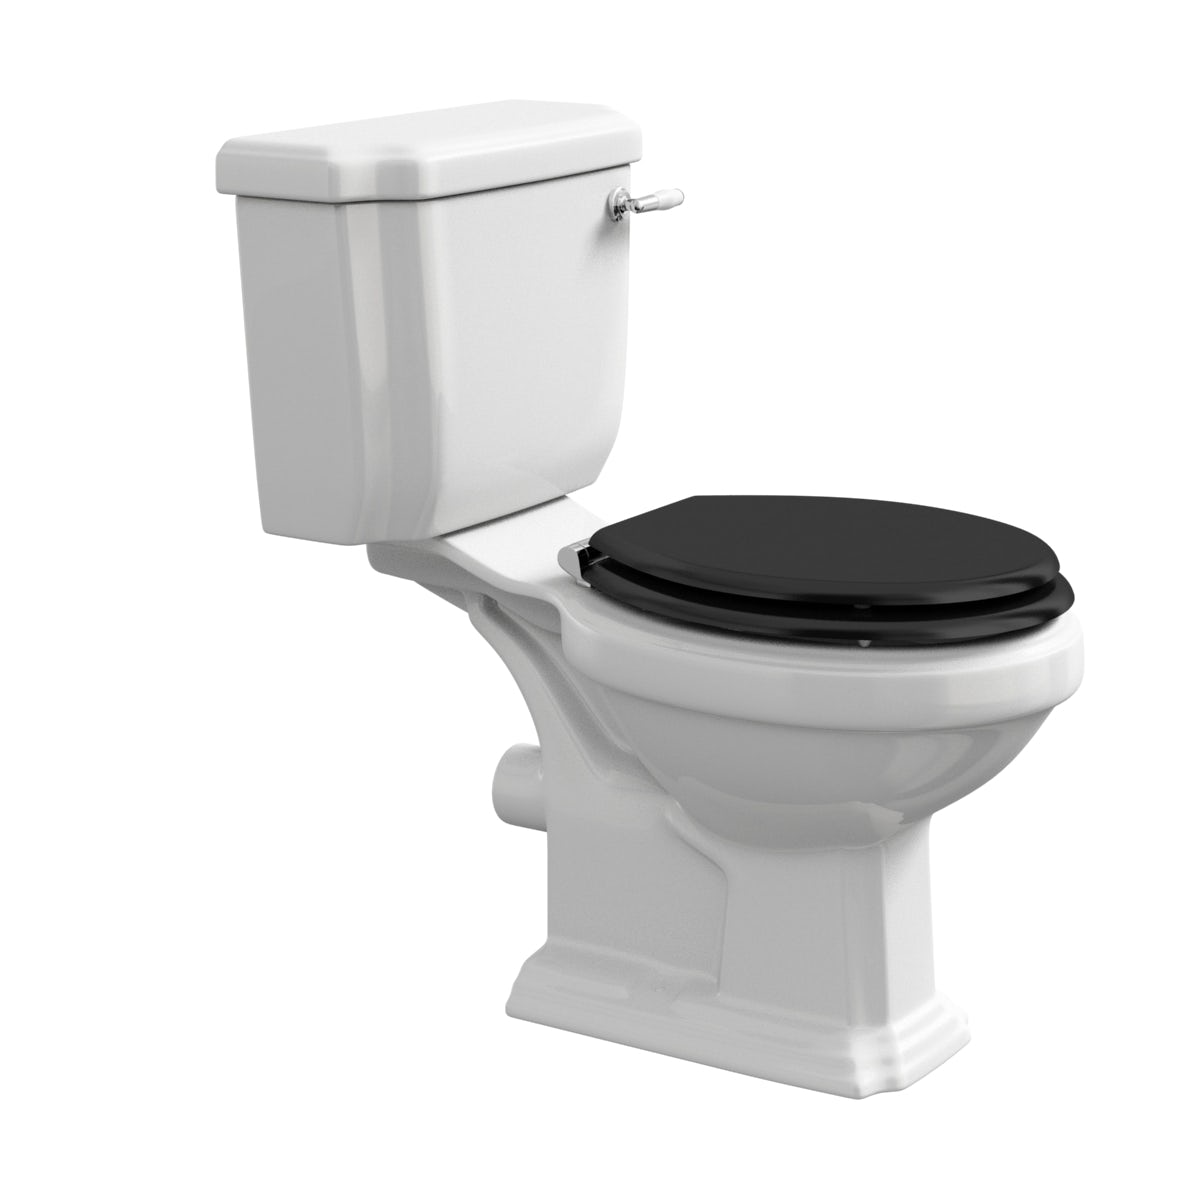 Dulwich Close Coupled Toilet With Black Wooden Toilet Seat - White toilet with black seat